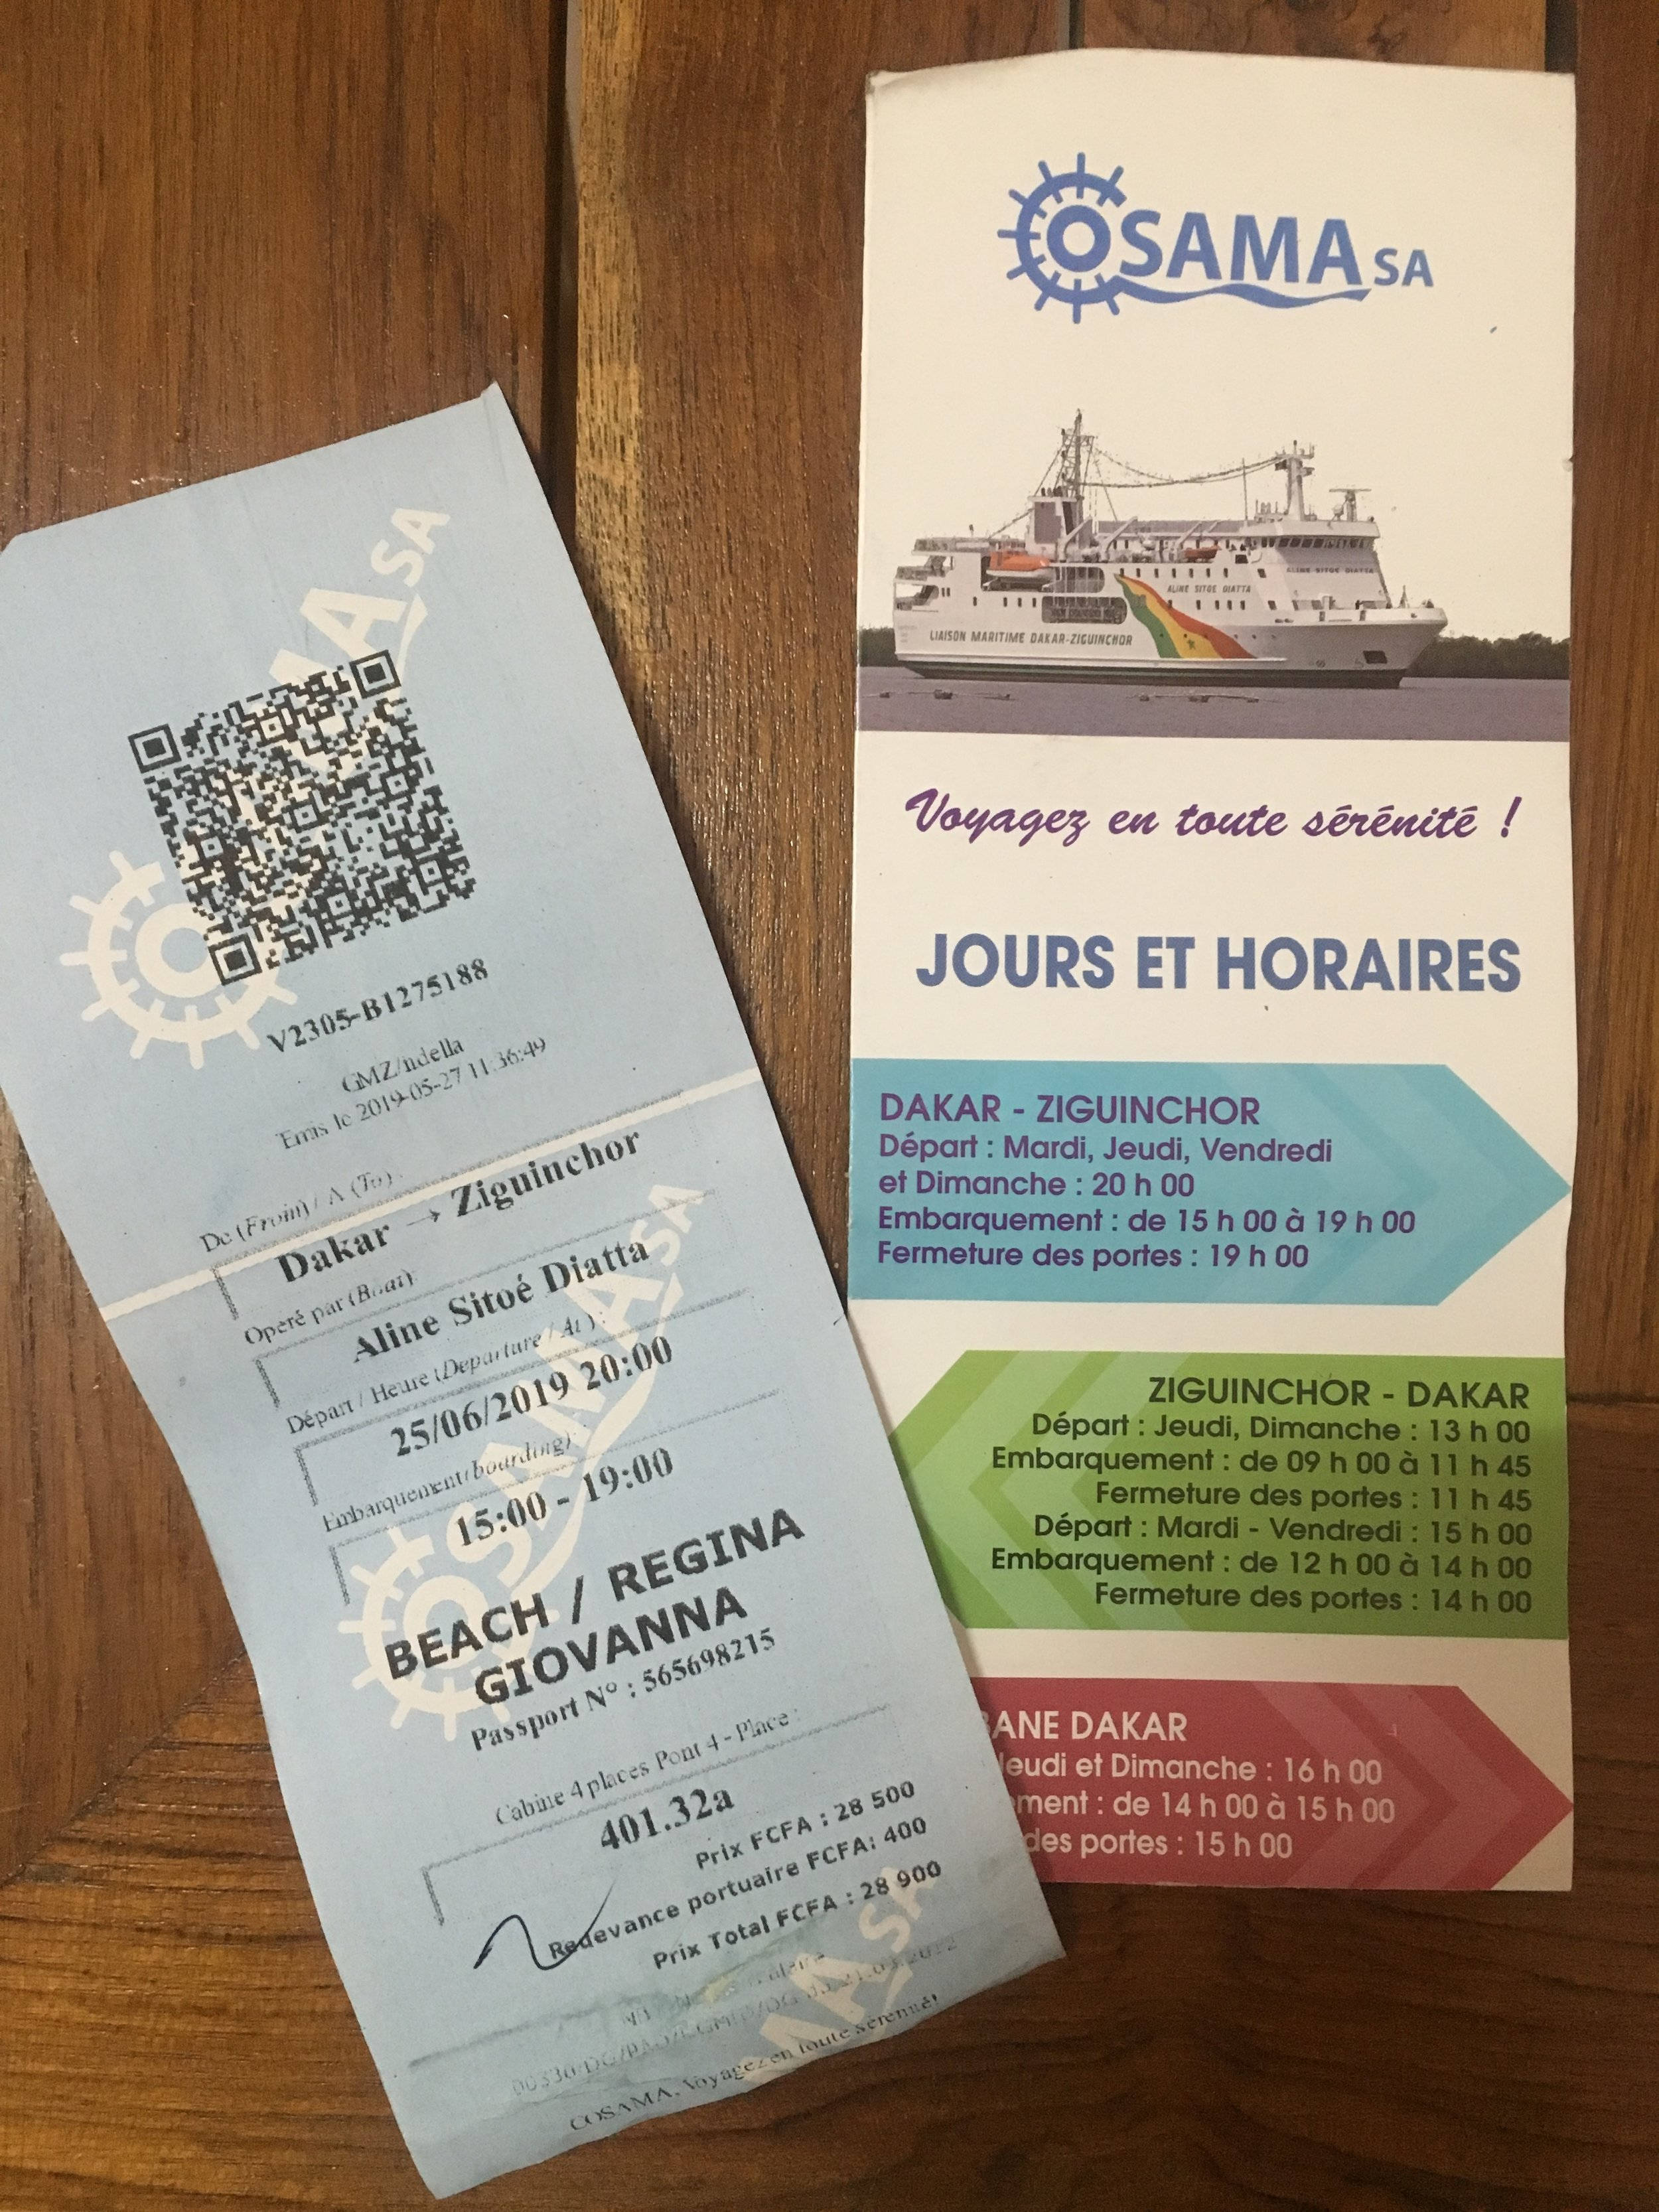 The tickets for the Dakar to Ziguinchor ferry.